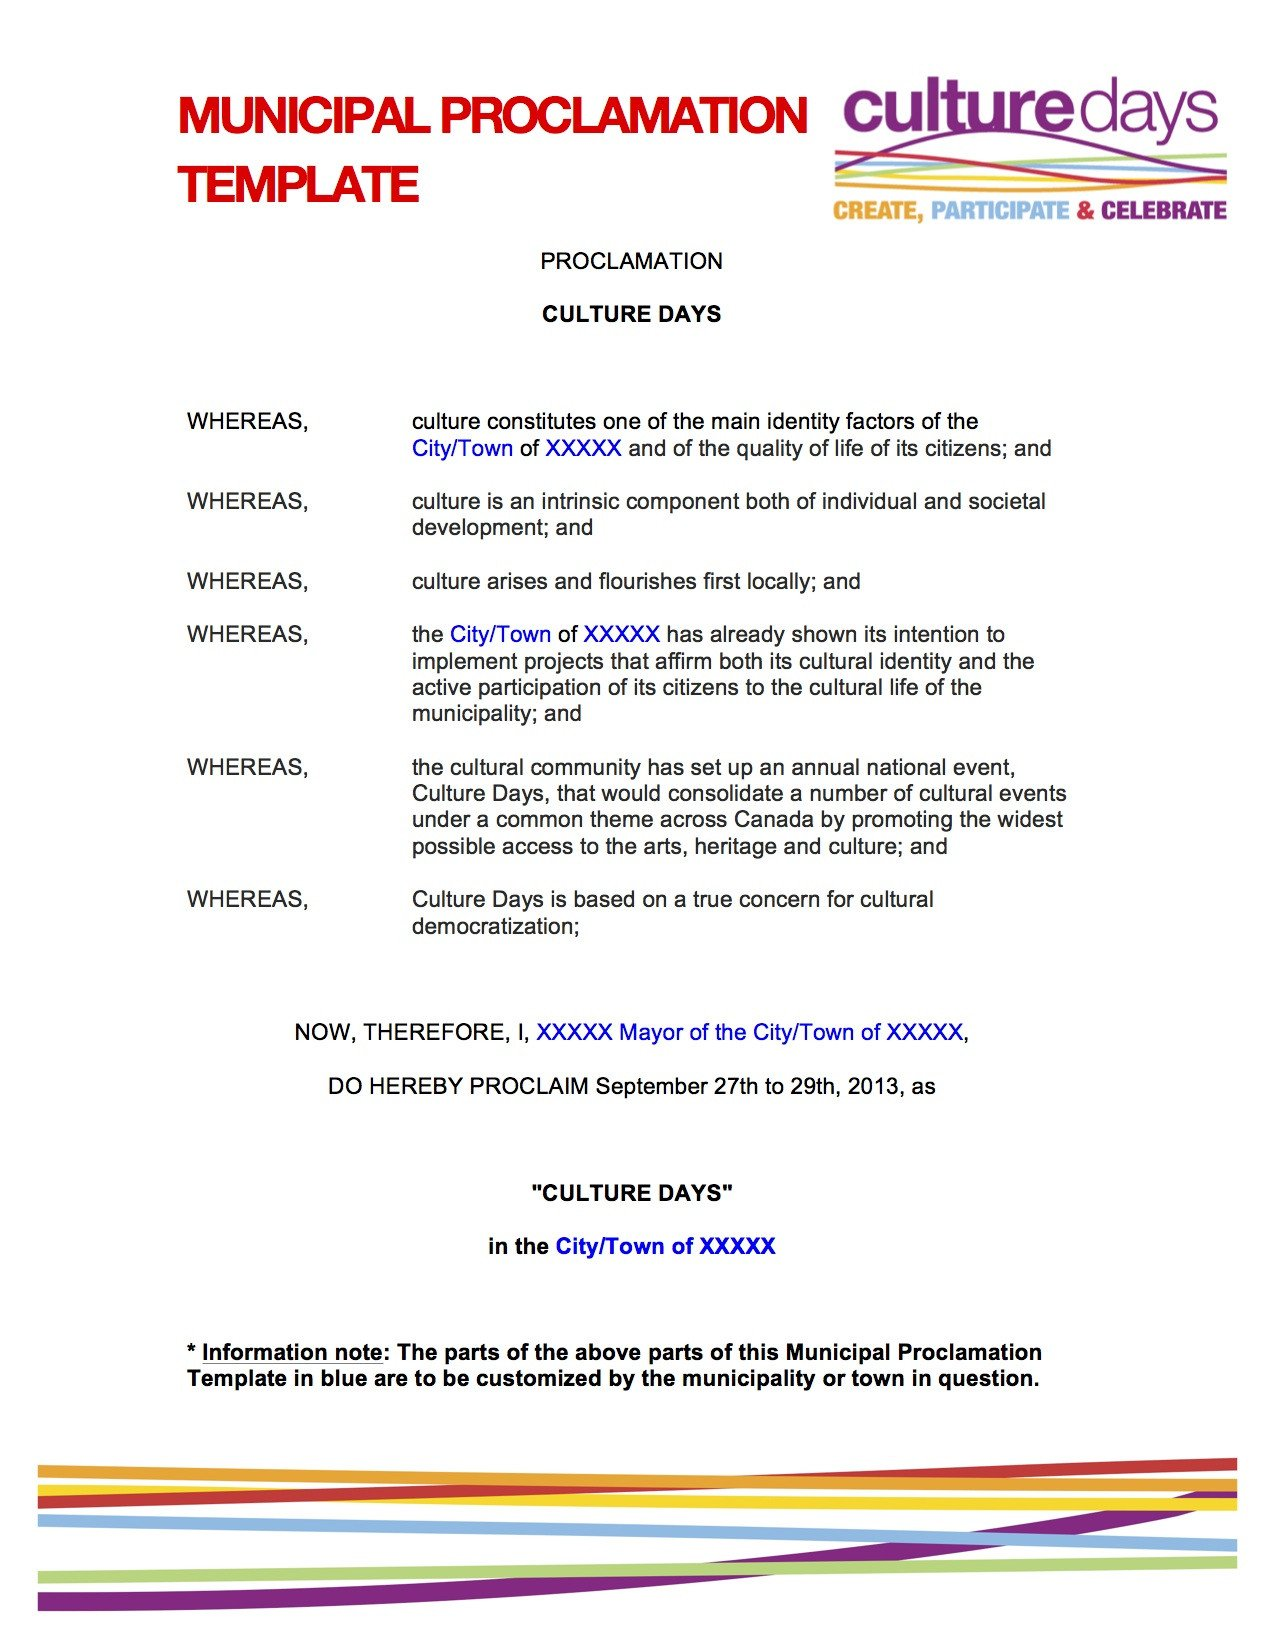 Mayoral Proclamation Template Declare Your Alliance Municipal Proclamation